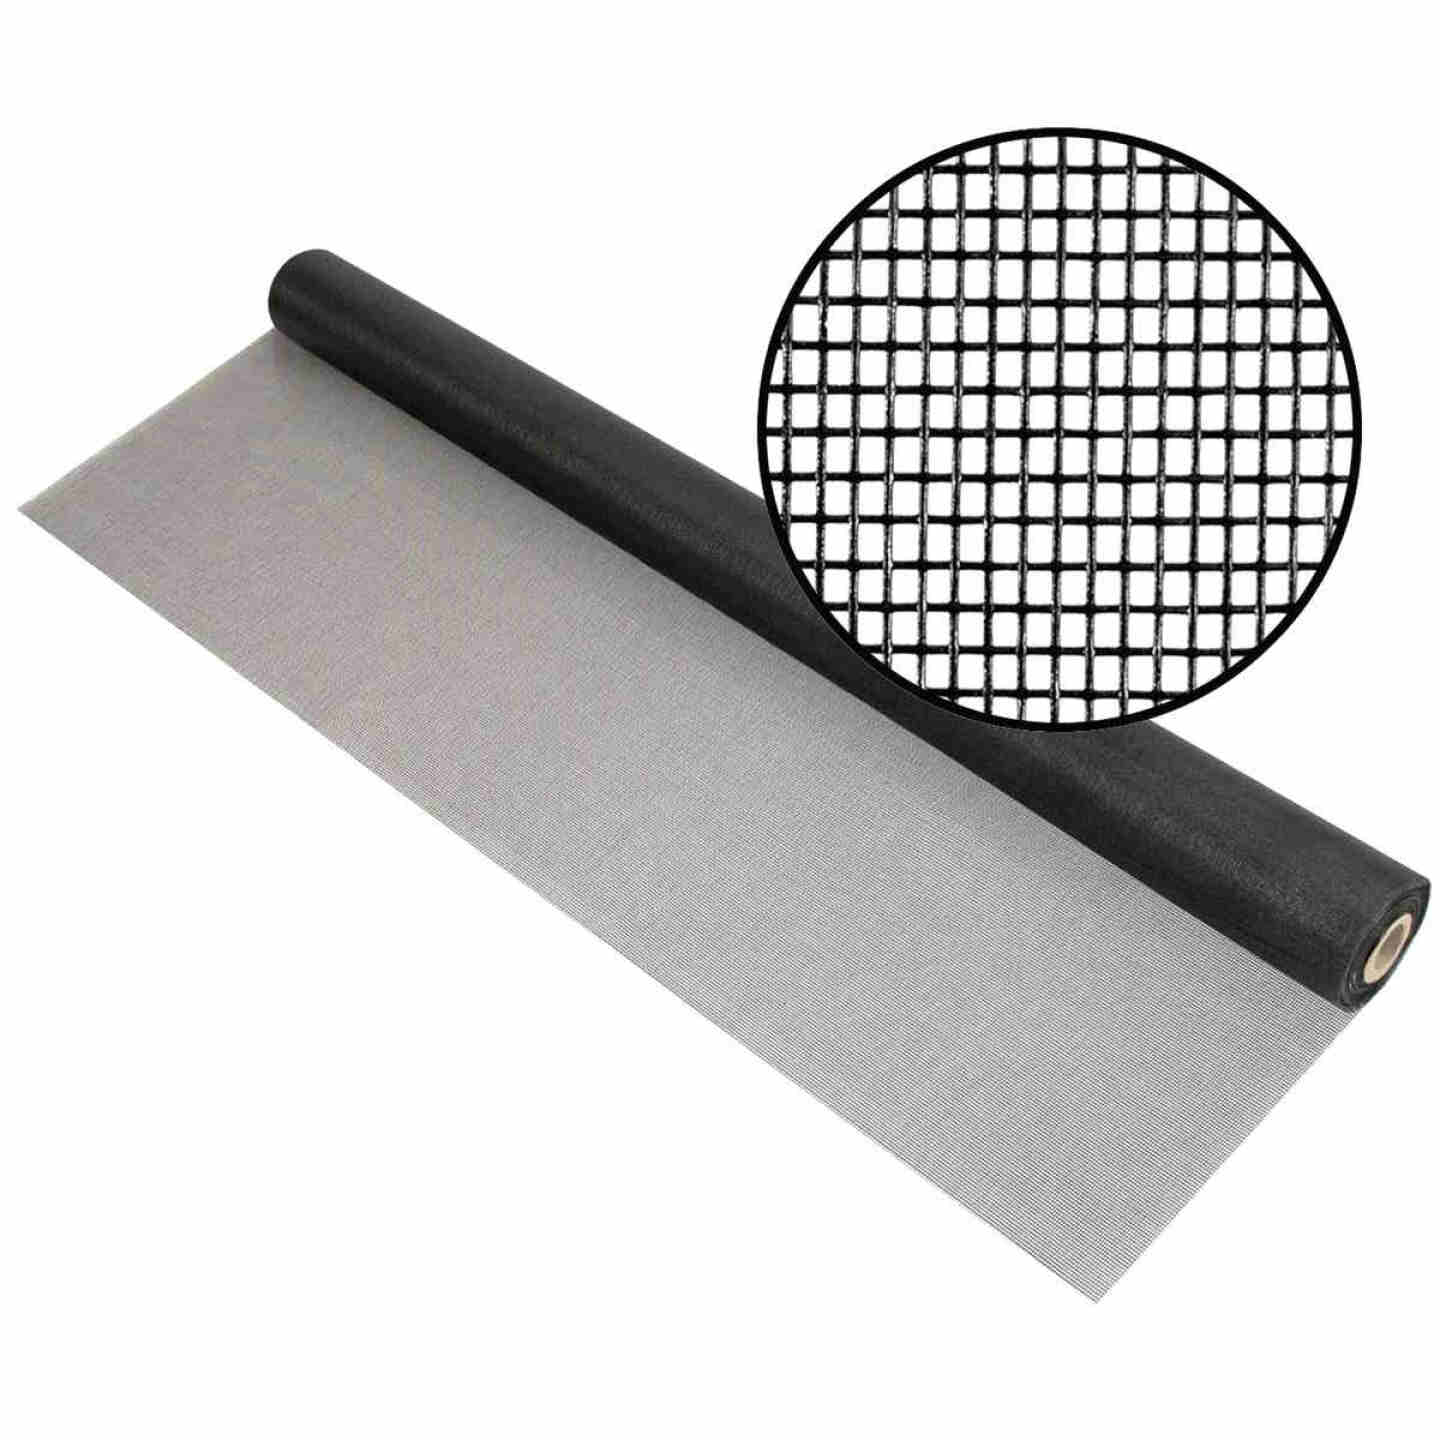 Phifer 60 In. x 100 Ft. Charcoal Fiberglass Mesh Screen Cloth Image 1